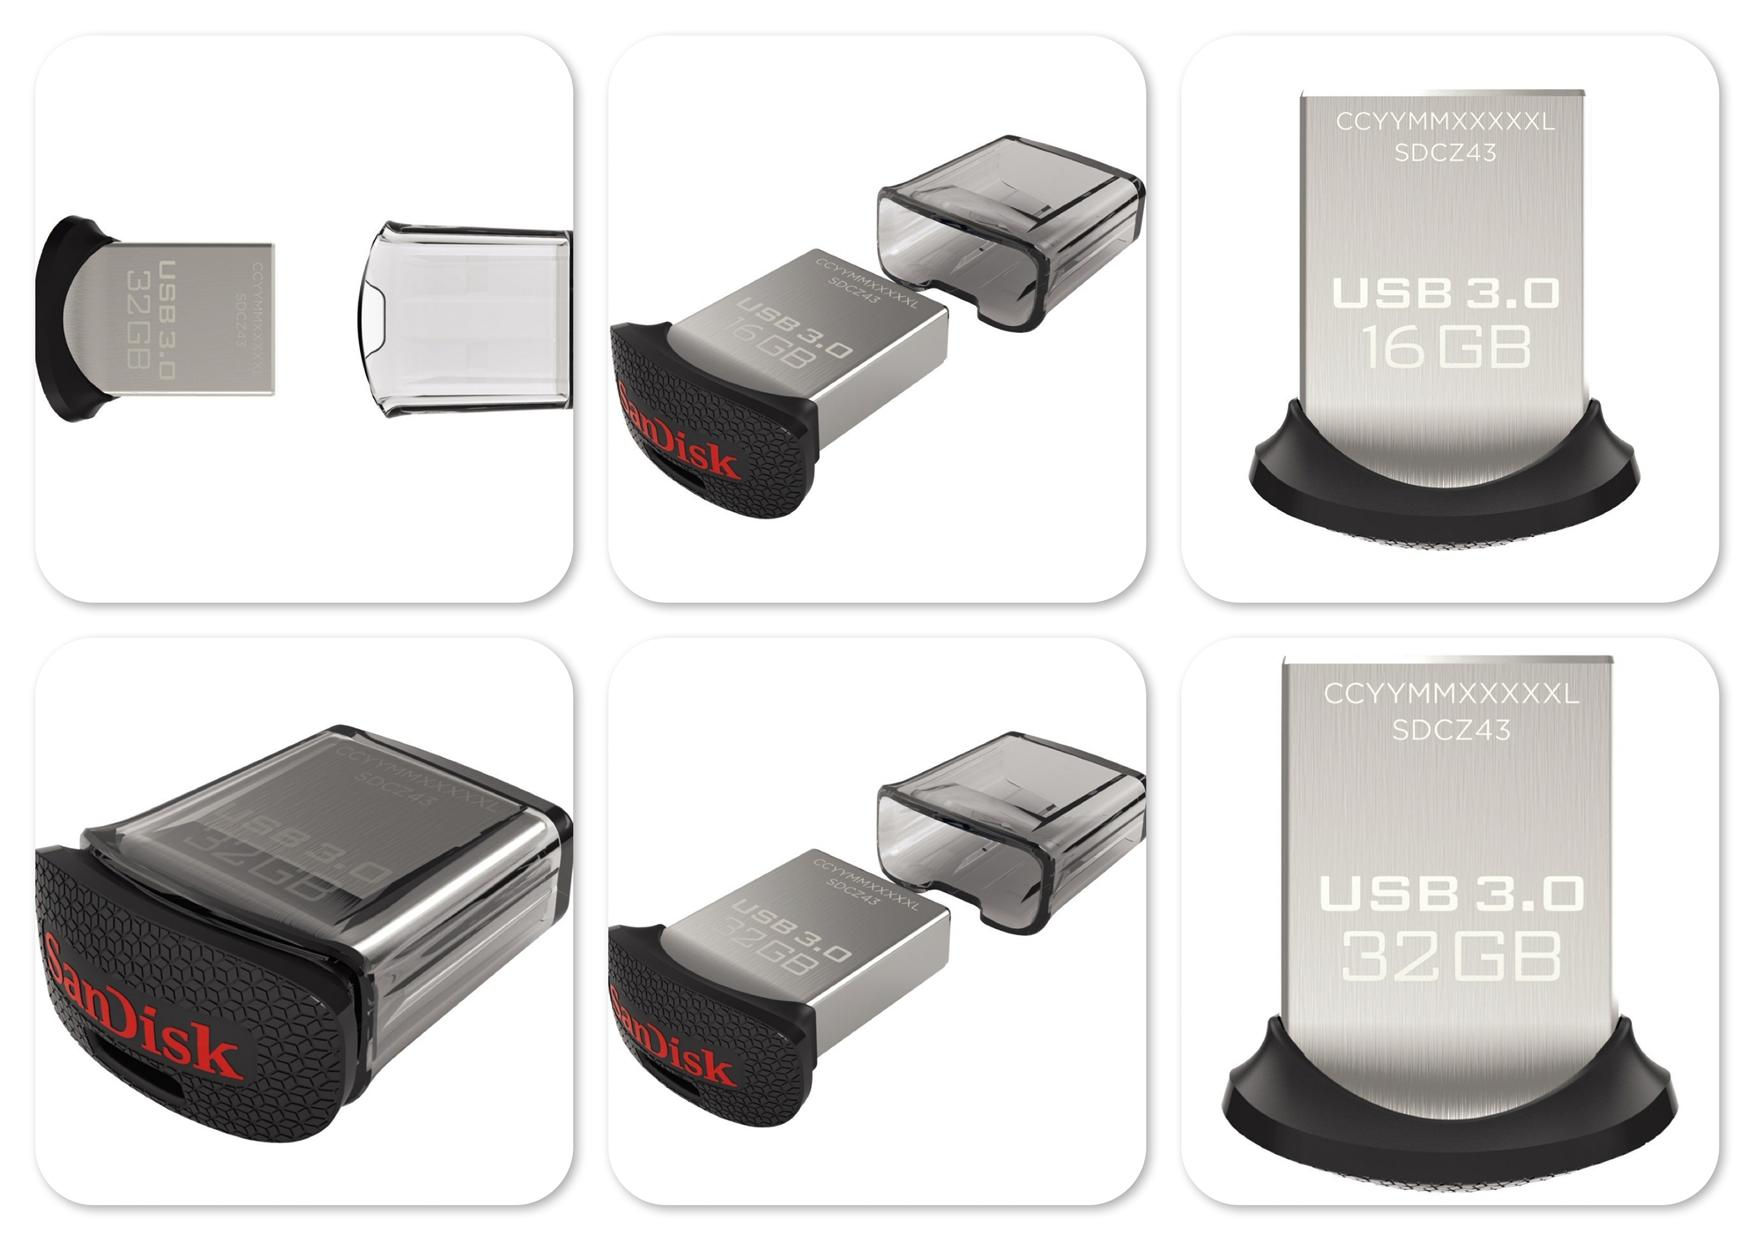 Bdotcom = SanDisk USB 3.0 32GB Ultra Fit Flash Drive Thumb Drive